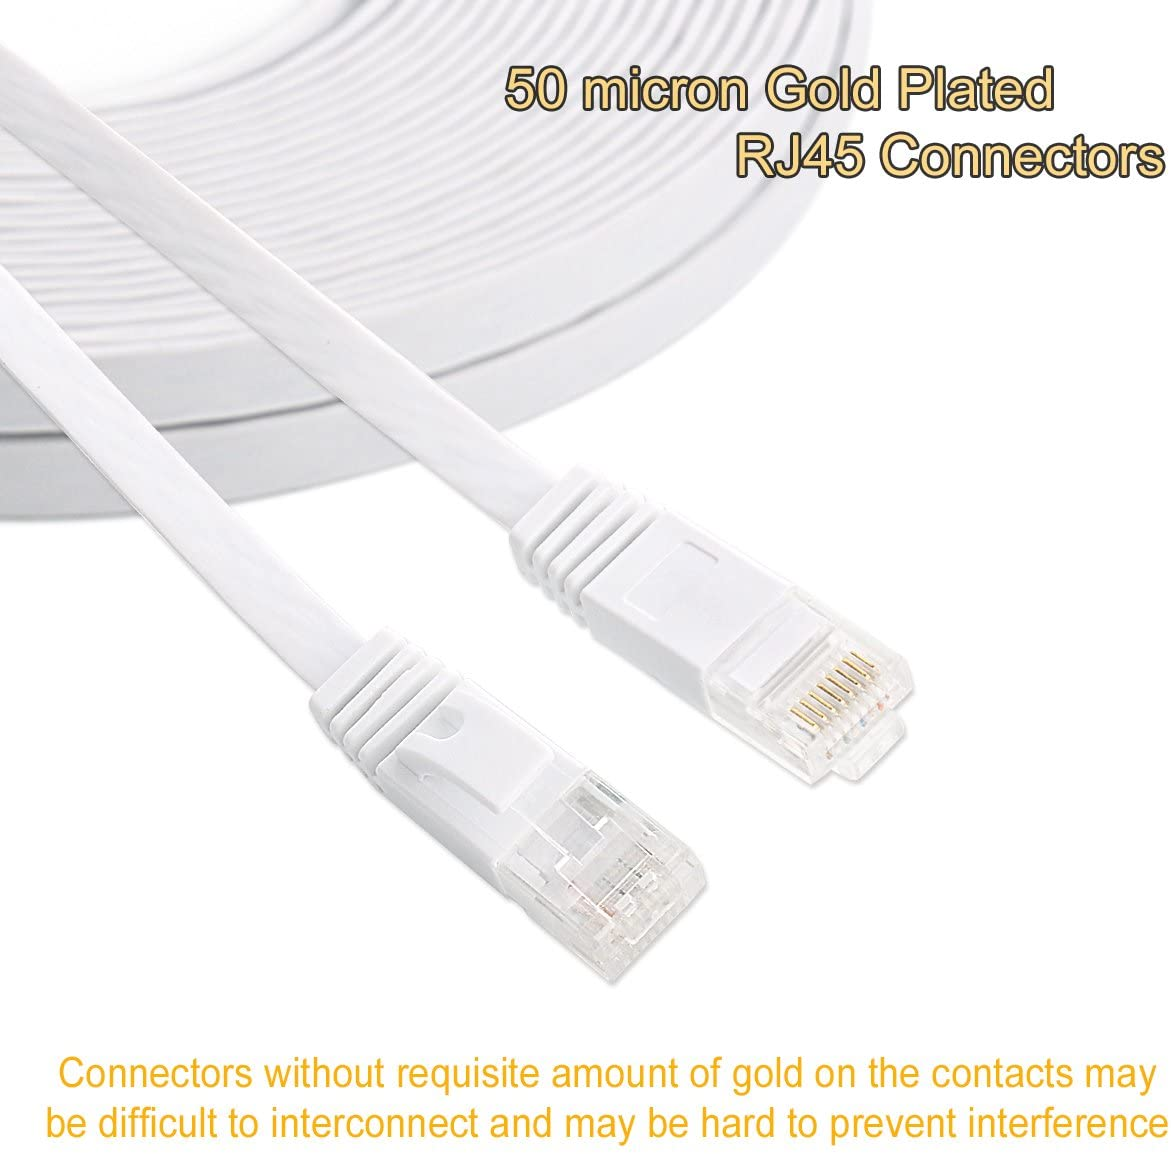 Cat 6 Ethernet Cable 25 ft White Flat - Solid Internet Network Lan patch cord – Cat6 High Speed Computer wire With clips & Rj45 Connectors for Router, modem, PS, Xbox– faster than Cat5e/Cat5 - 25 feet: Electronics